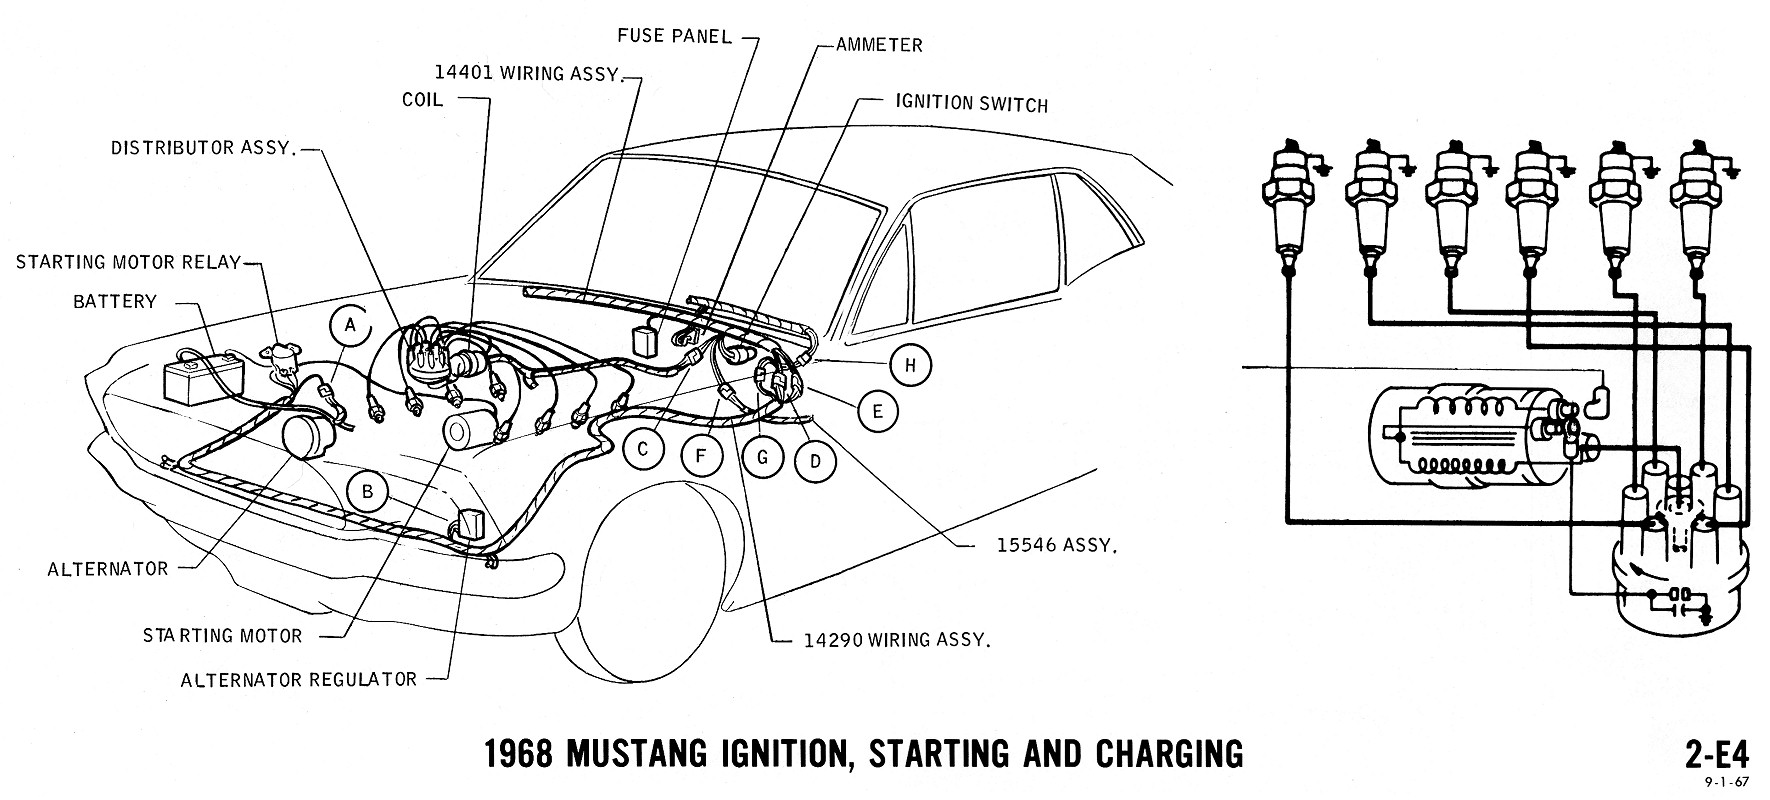 1968 mustang wiring diagram ignition starting charging 2 1968 mustang wiring diagrams and vacuum schematics average joe 1965 ford mustang wiring diagrams at arjmand.co